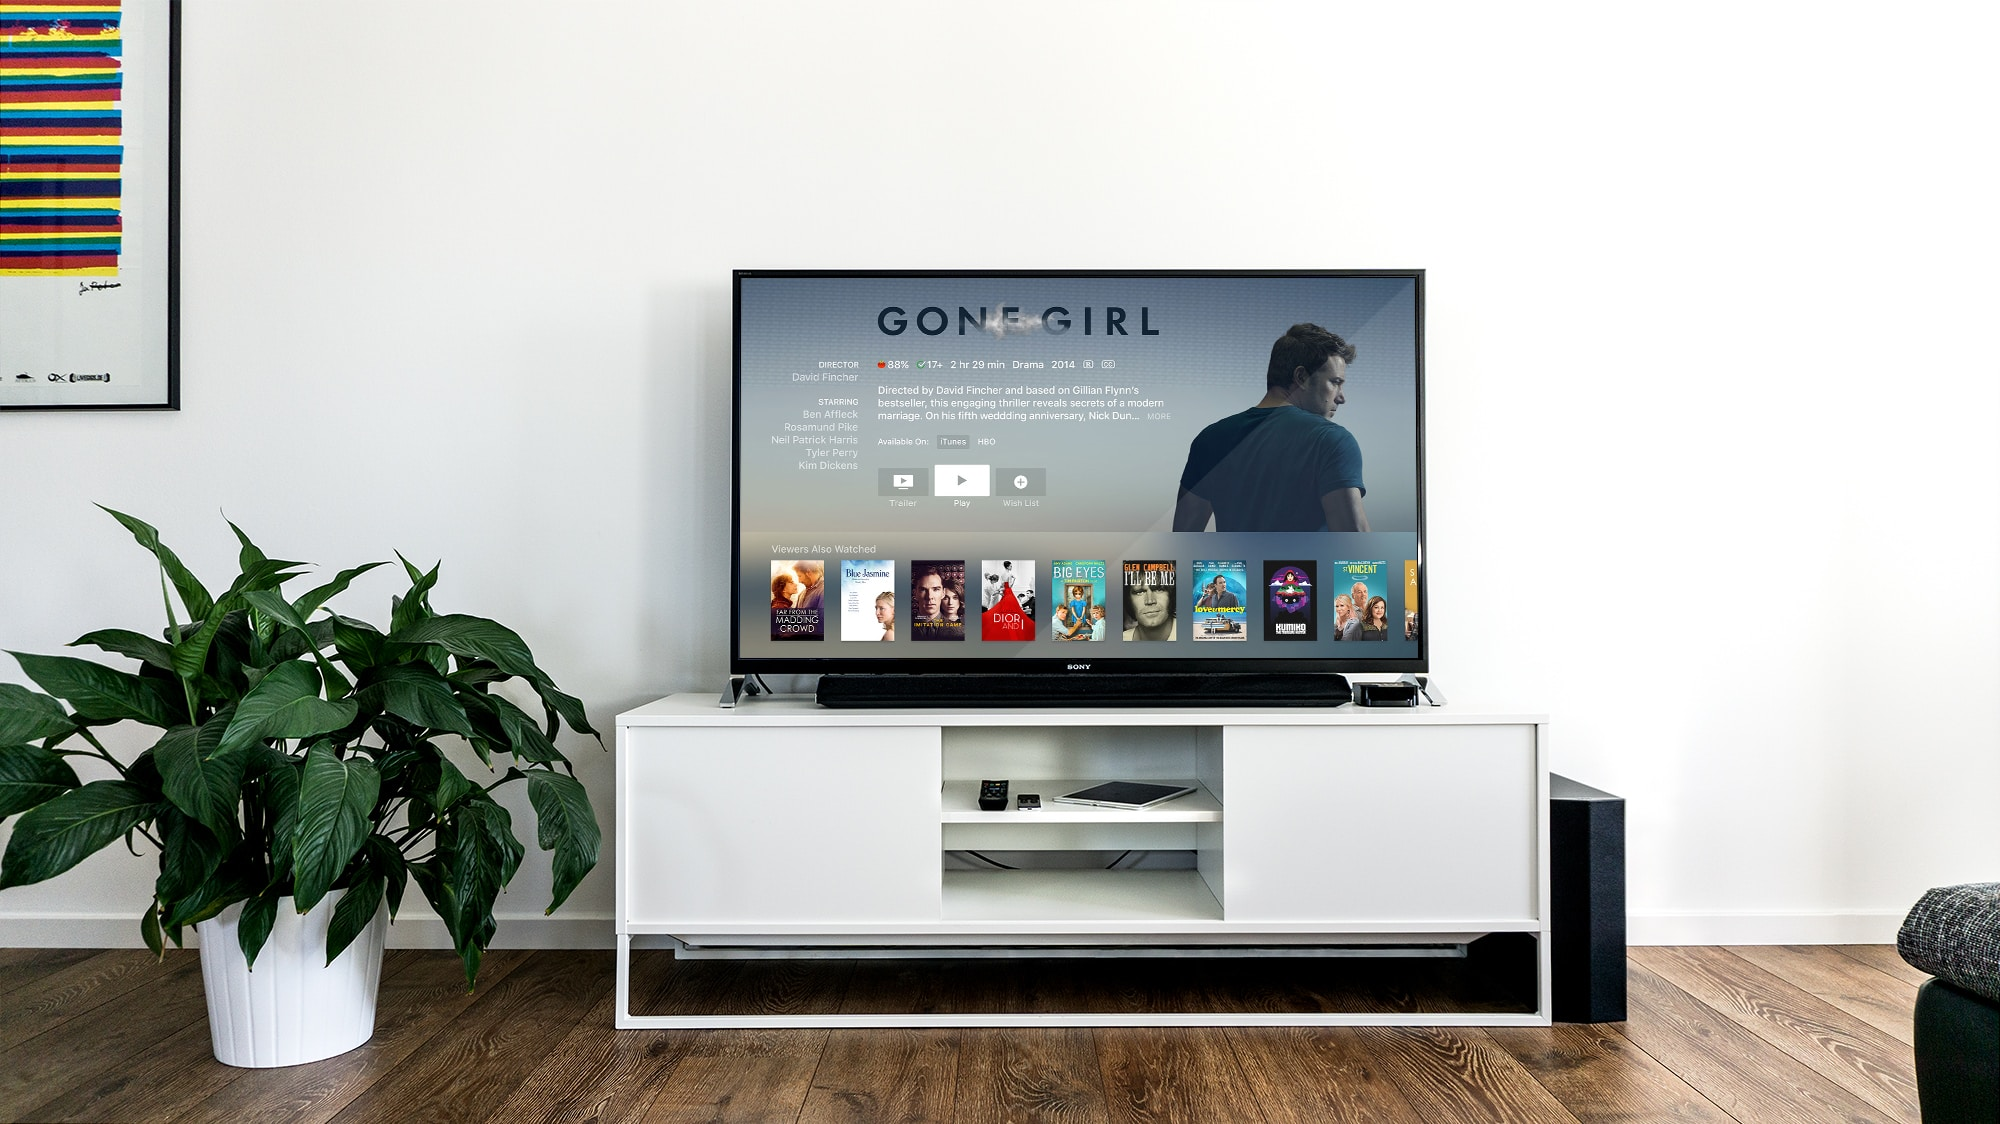 TV Ad Spend to Fall Under $65bn In 2019 - Report - Brand Spur